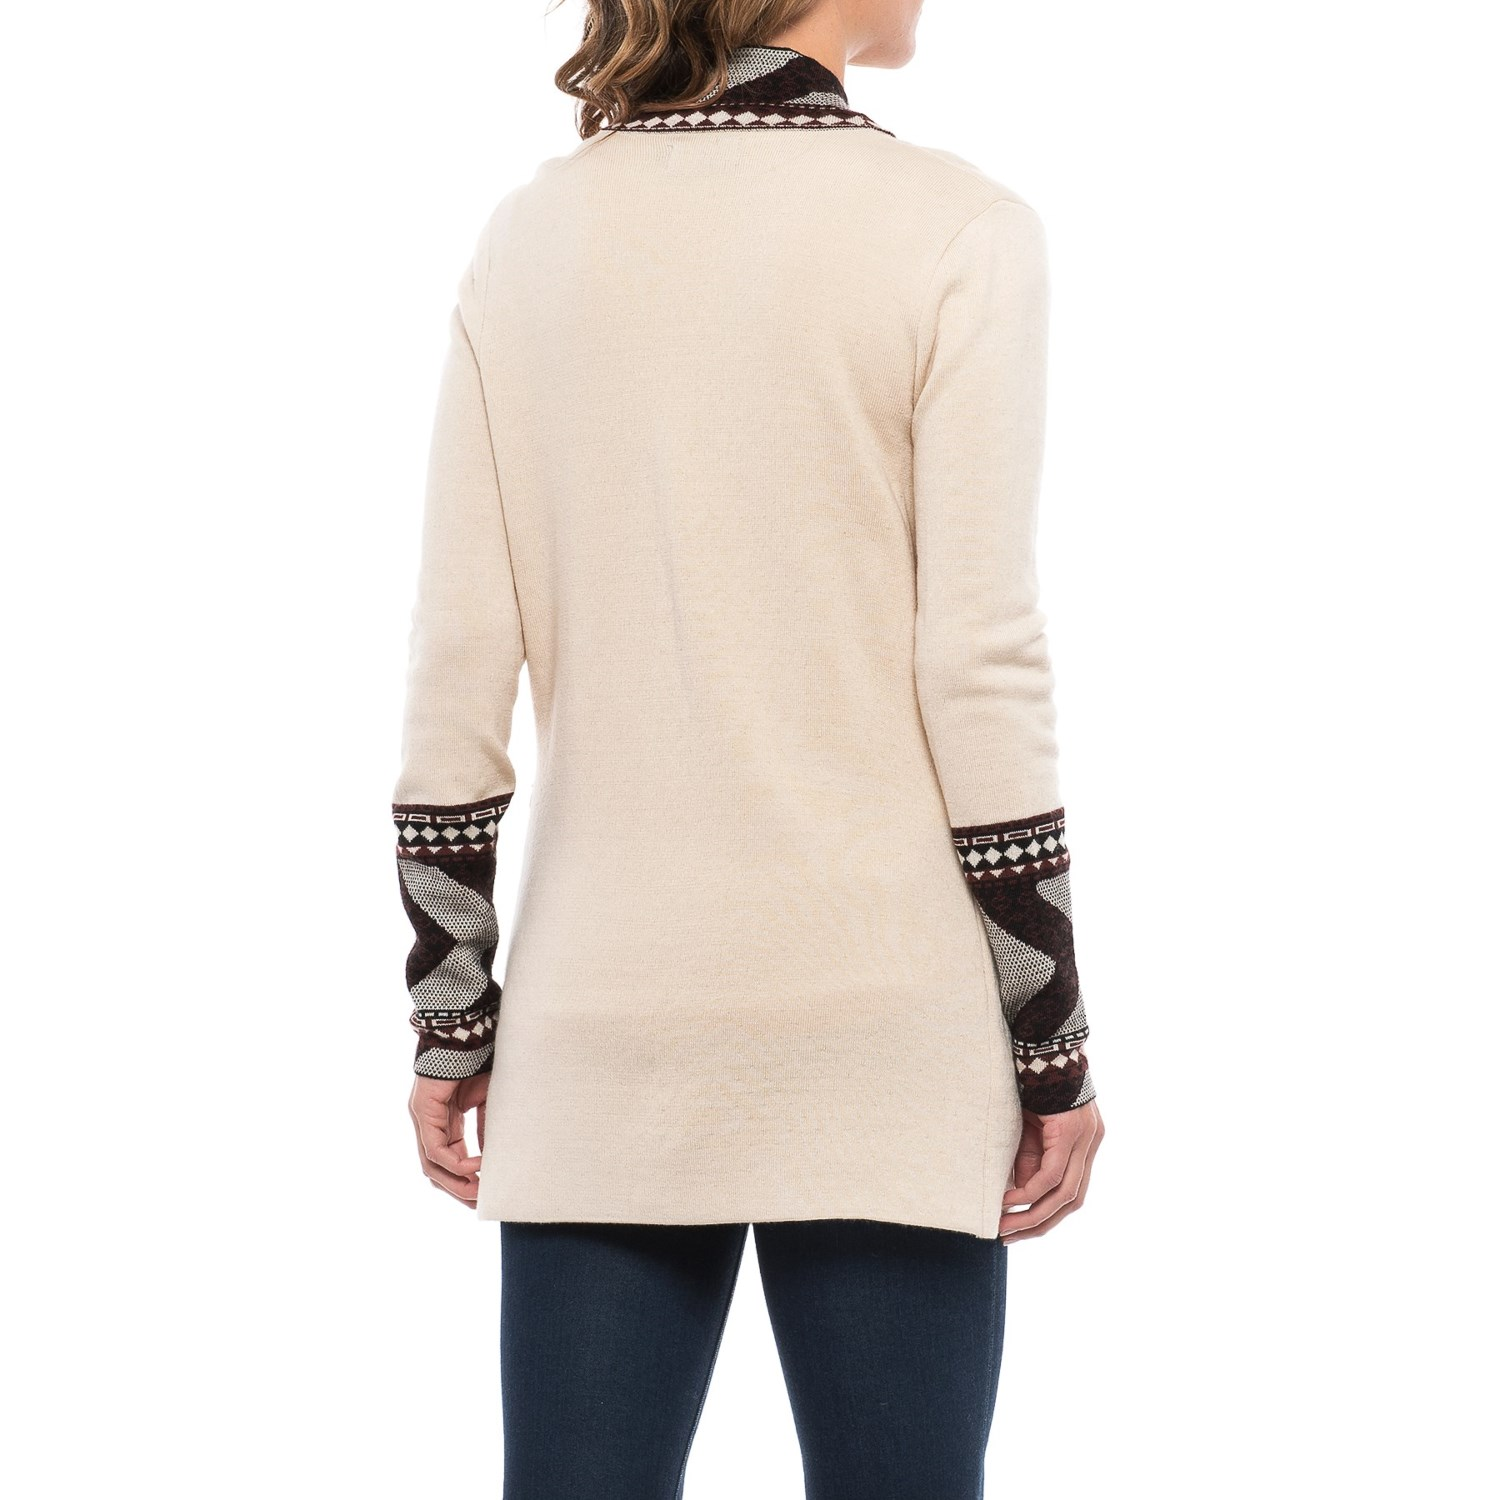 Icelandic Design Maya Cardigan Sweater (For Women) - Save 50%